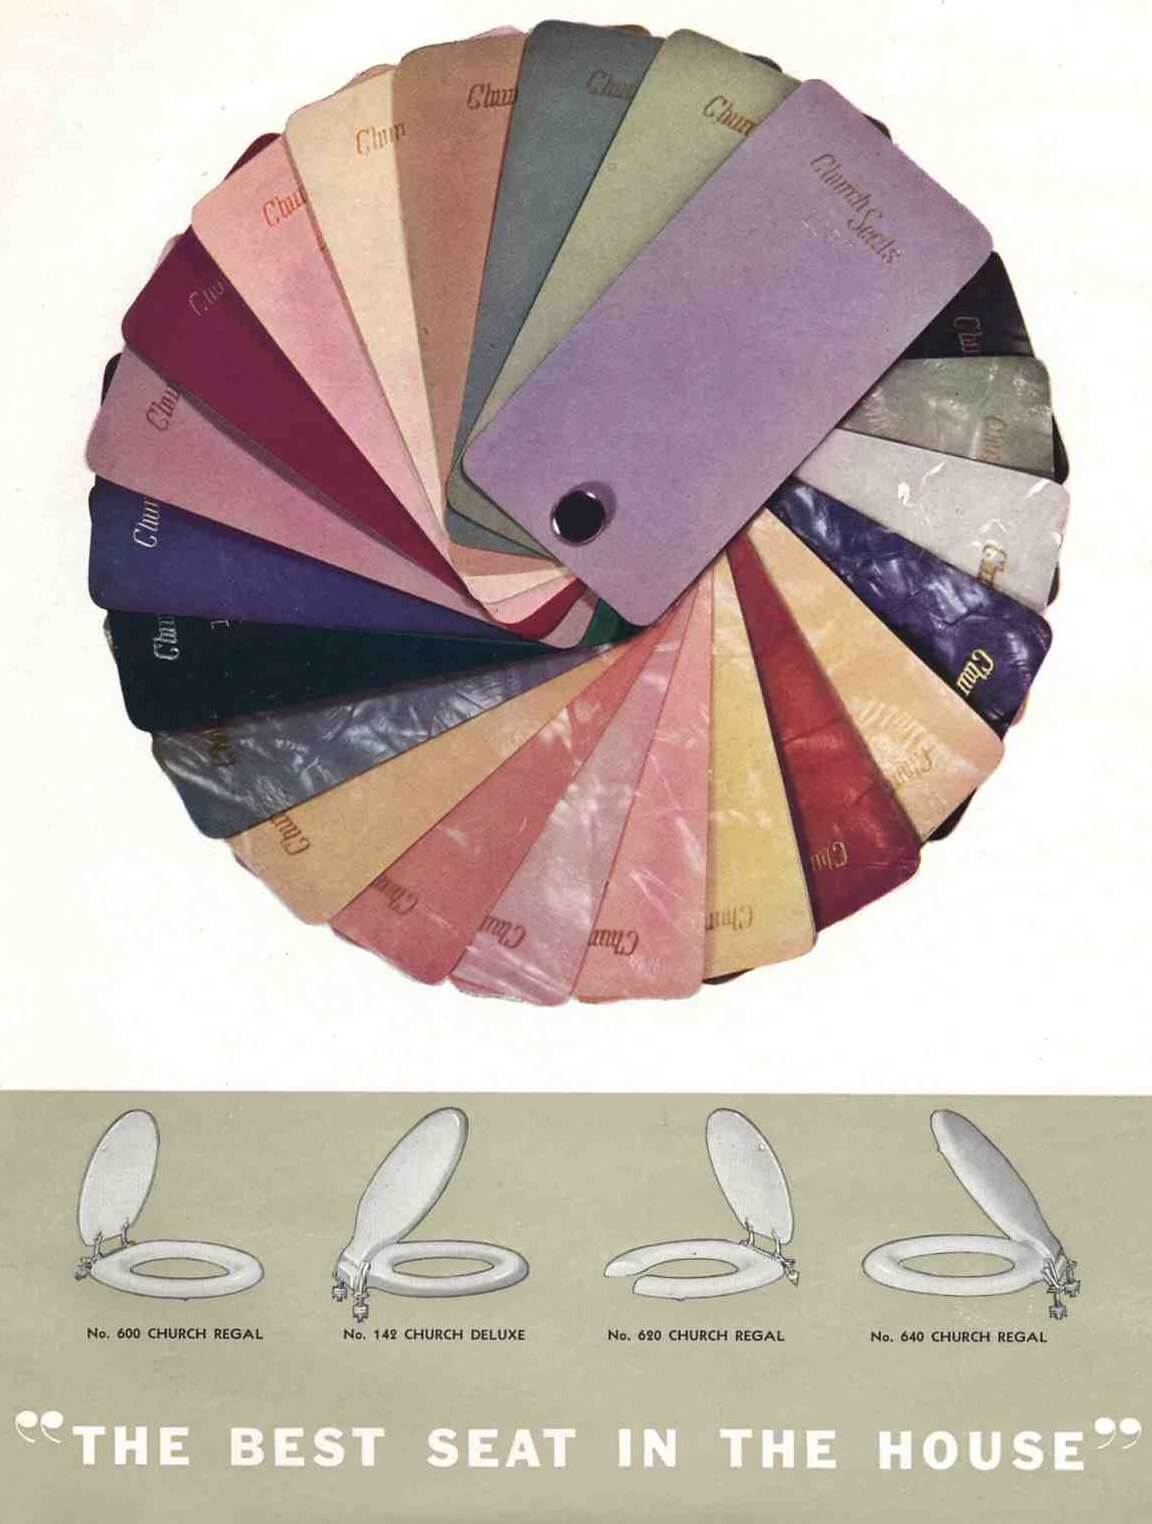 toilet-seat-colors-cropped.jpg